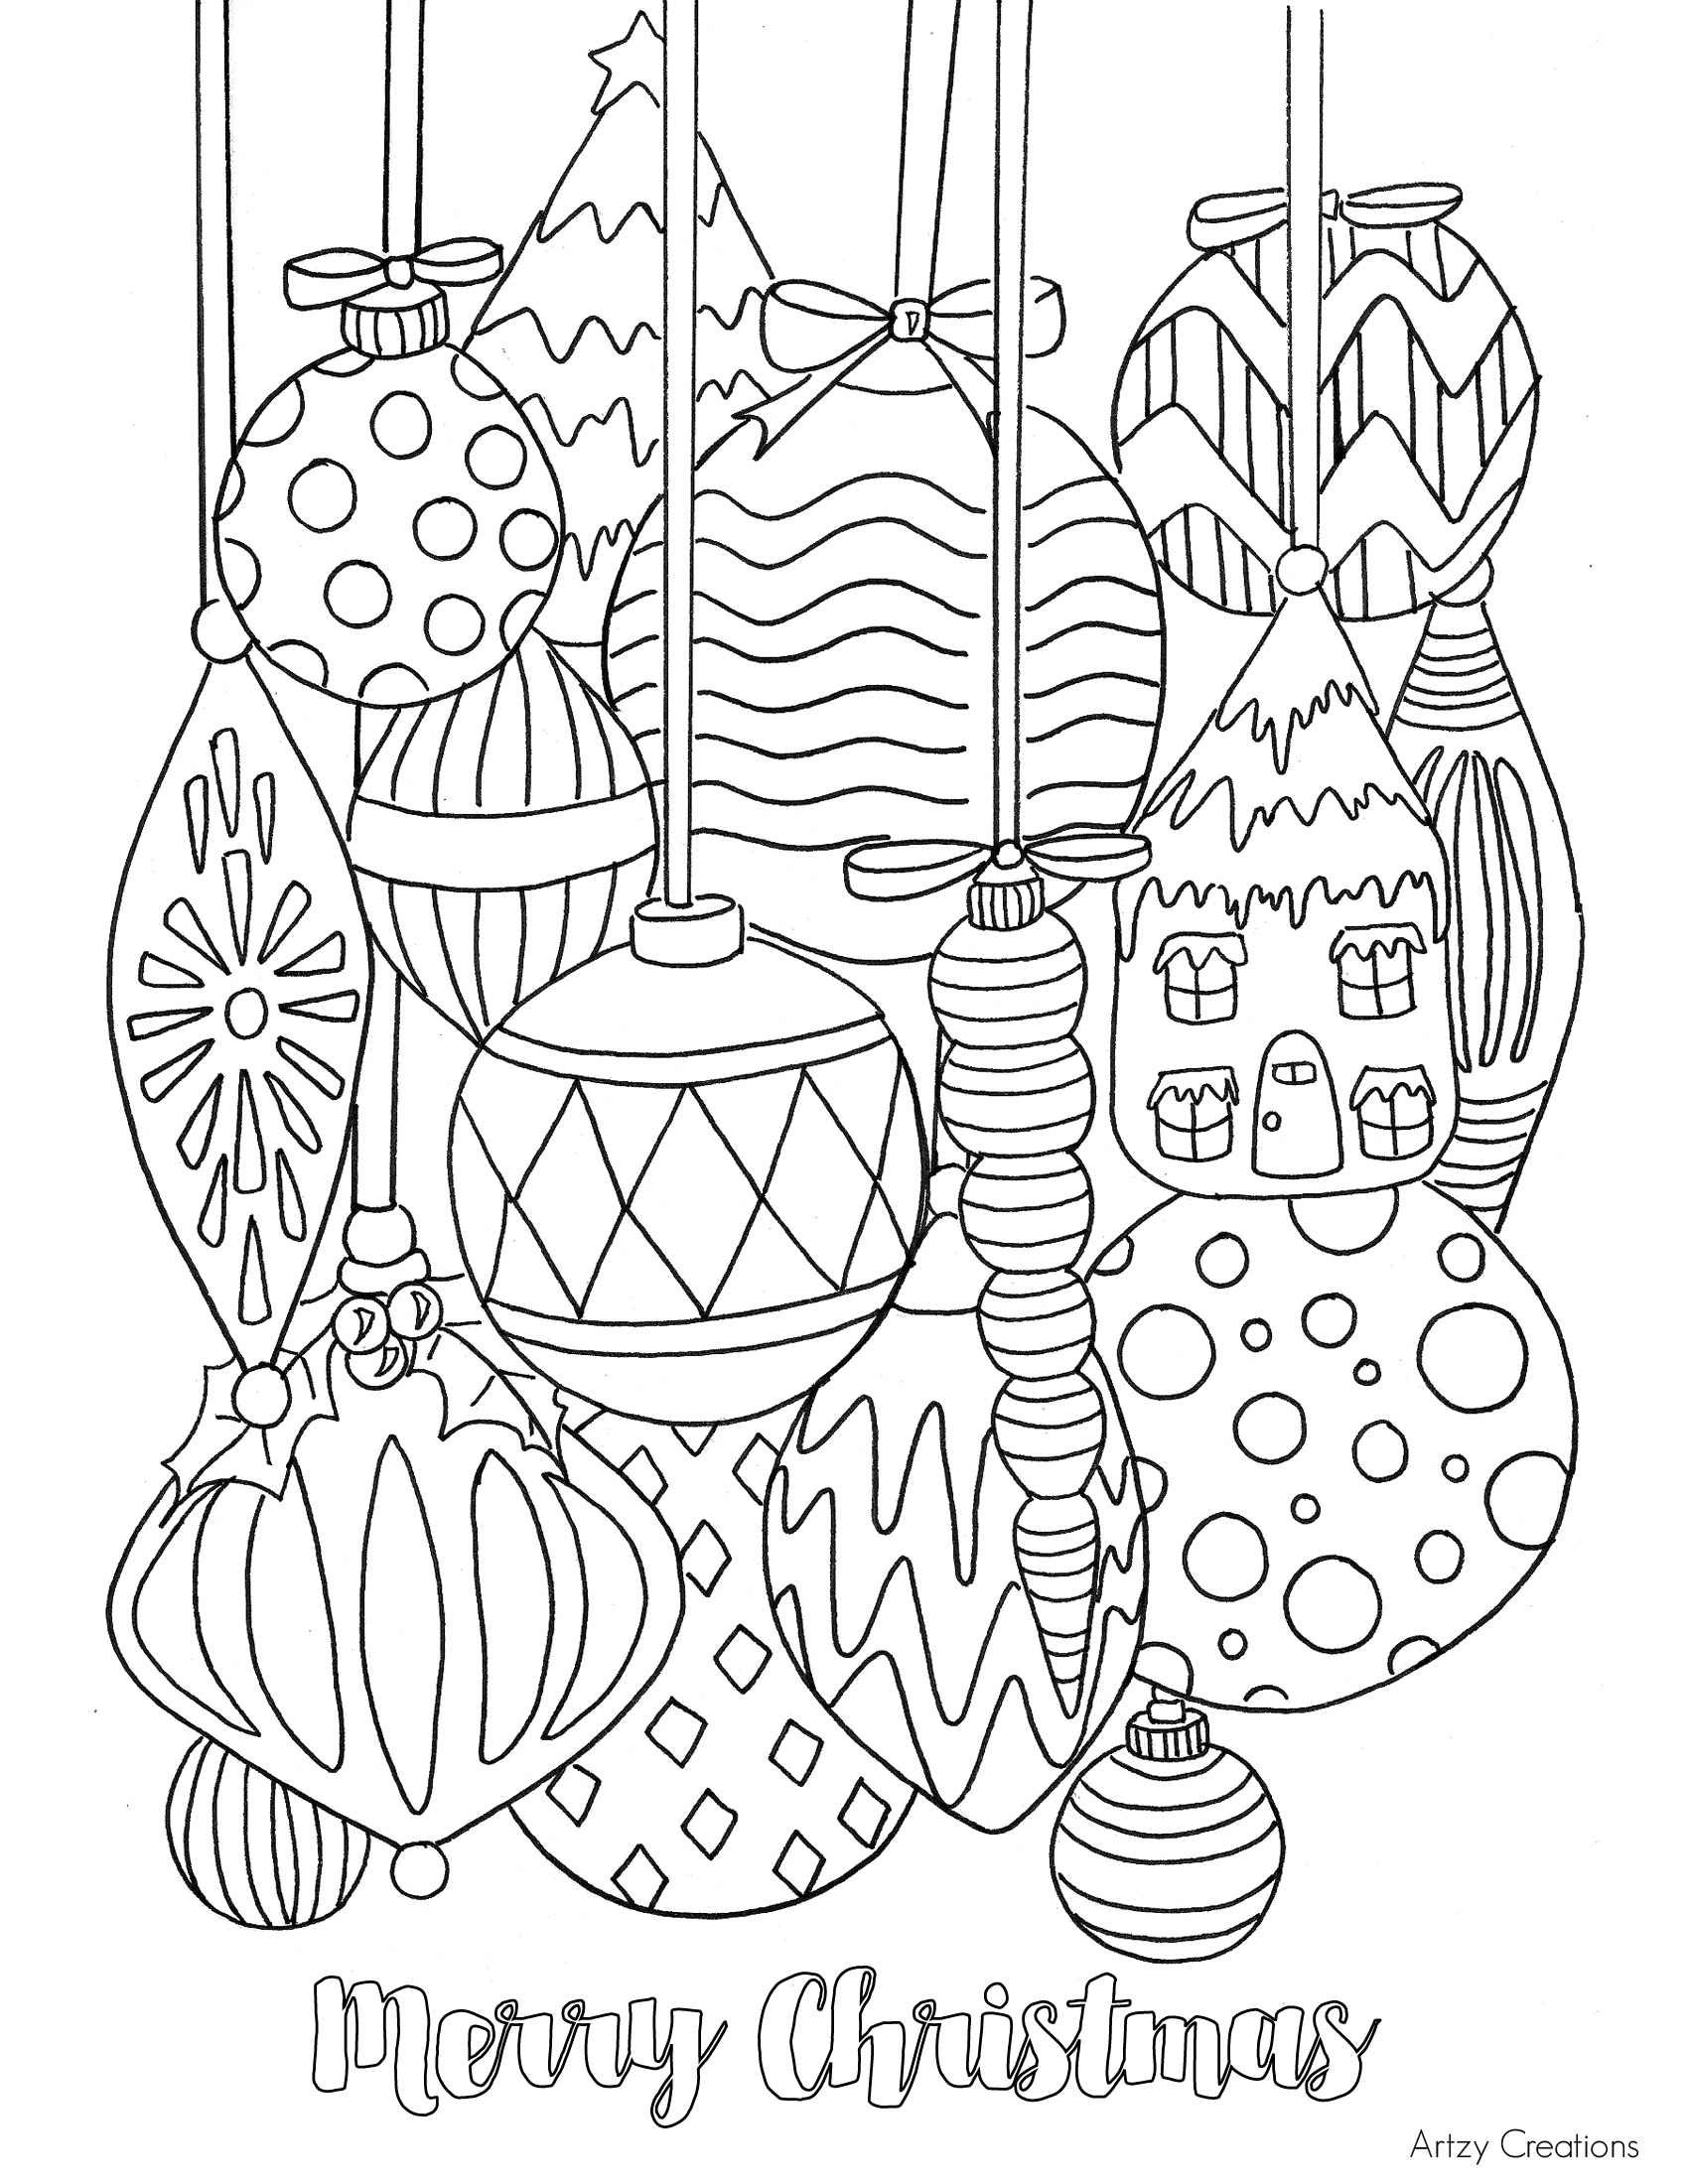 Christmas Tree Coloring Pages For Adults With To Print Free Books